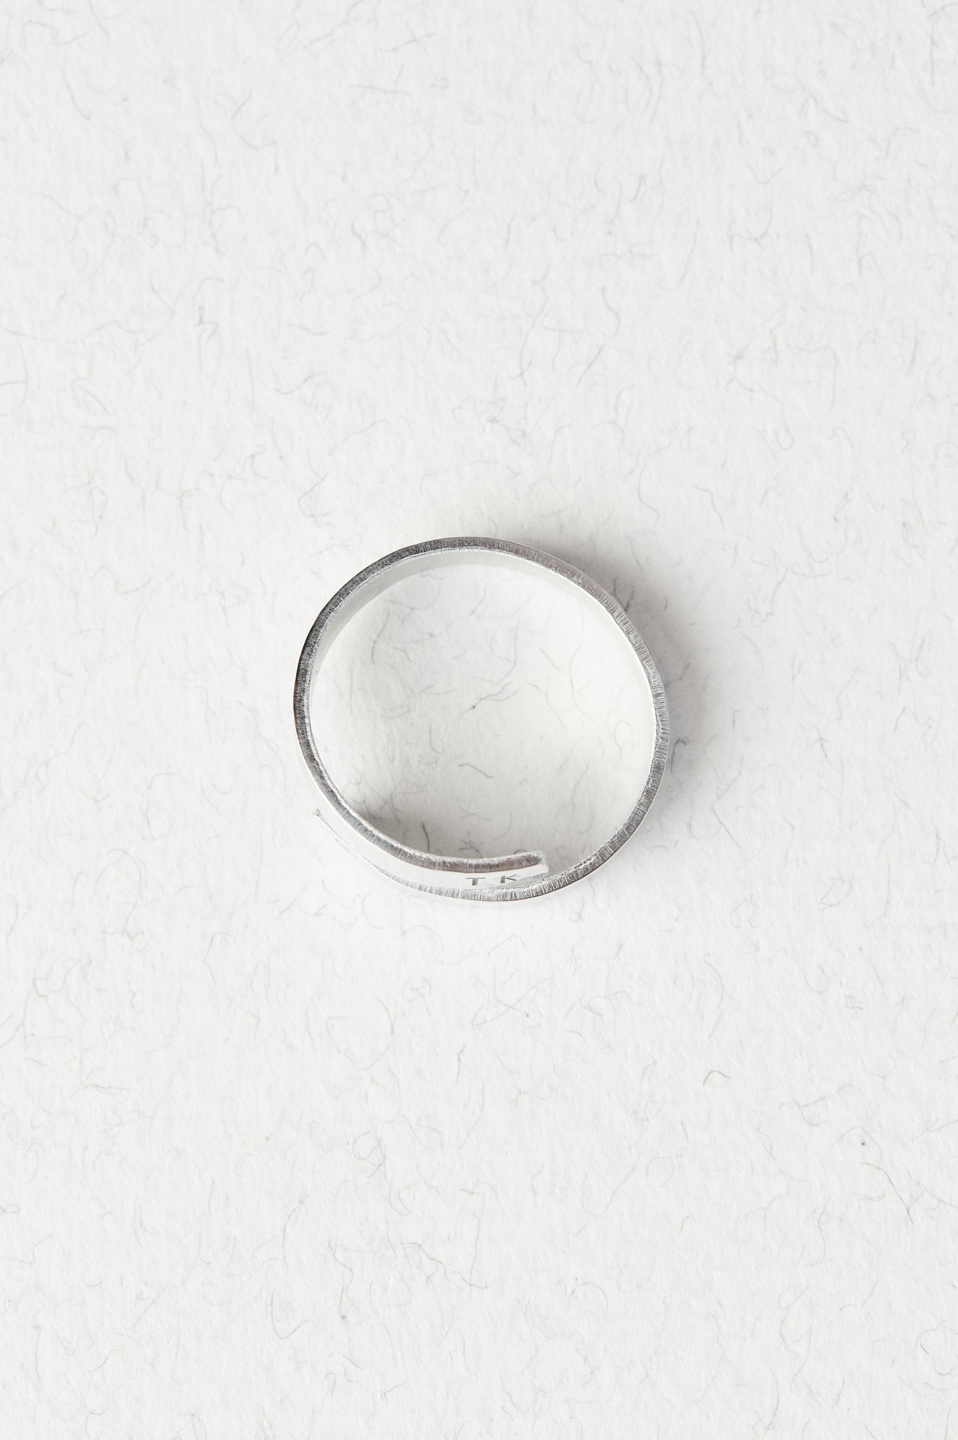 Personalised Sterling Silver Wrap Ring on a white background